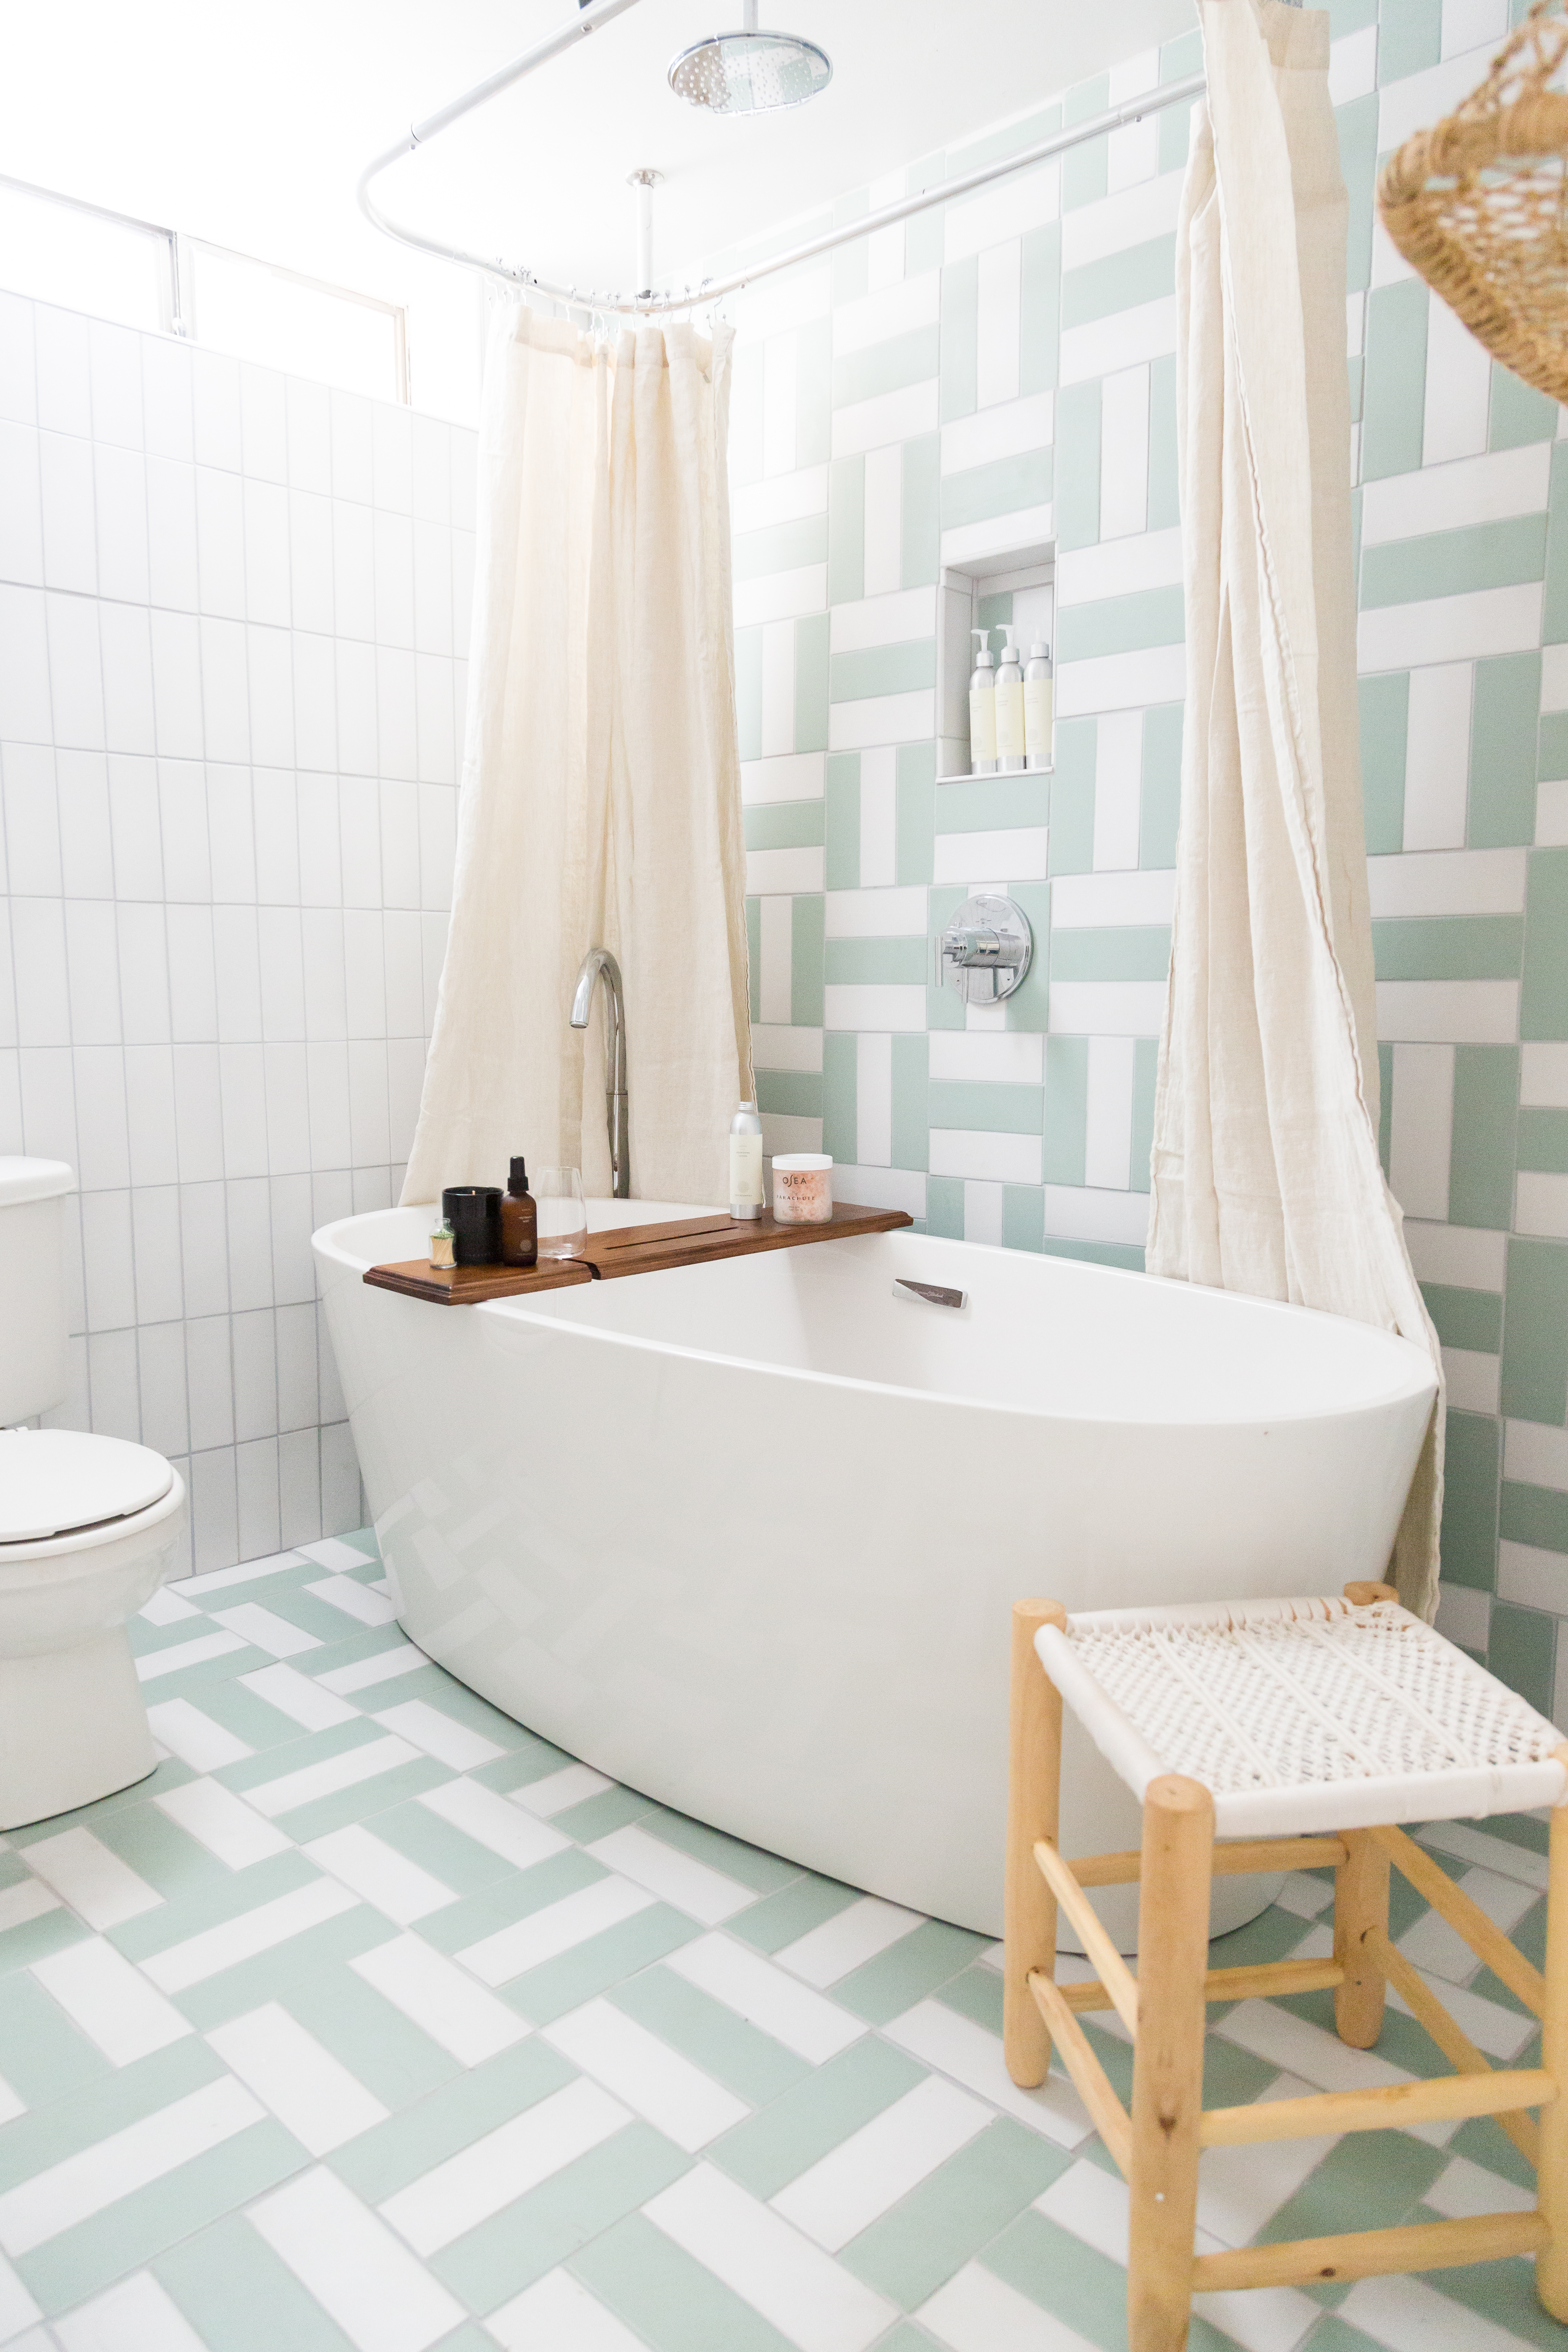 Claire Thomas took her own spin on a bold parquet pattern in both her cabin's bathrooms.